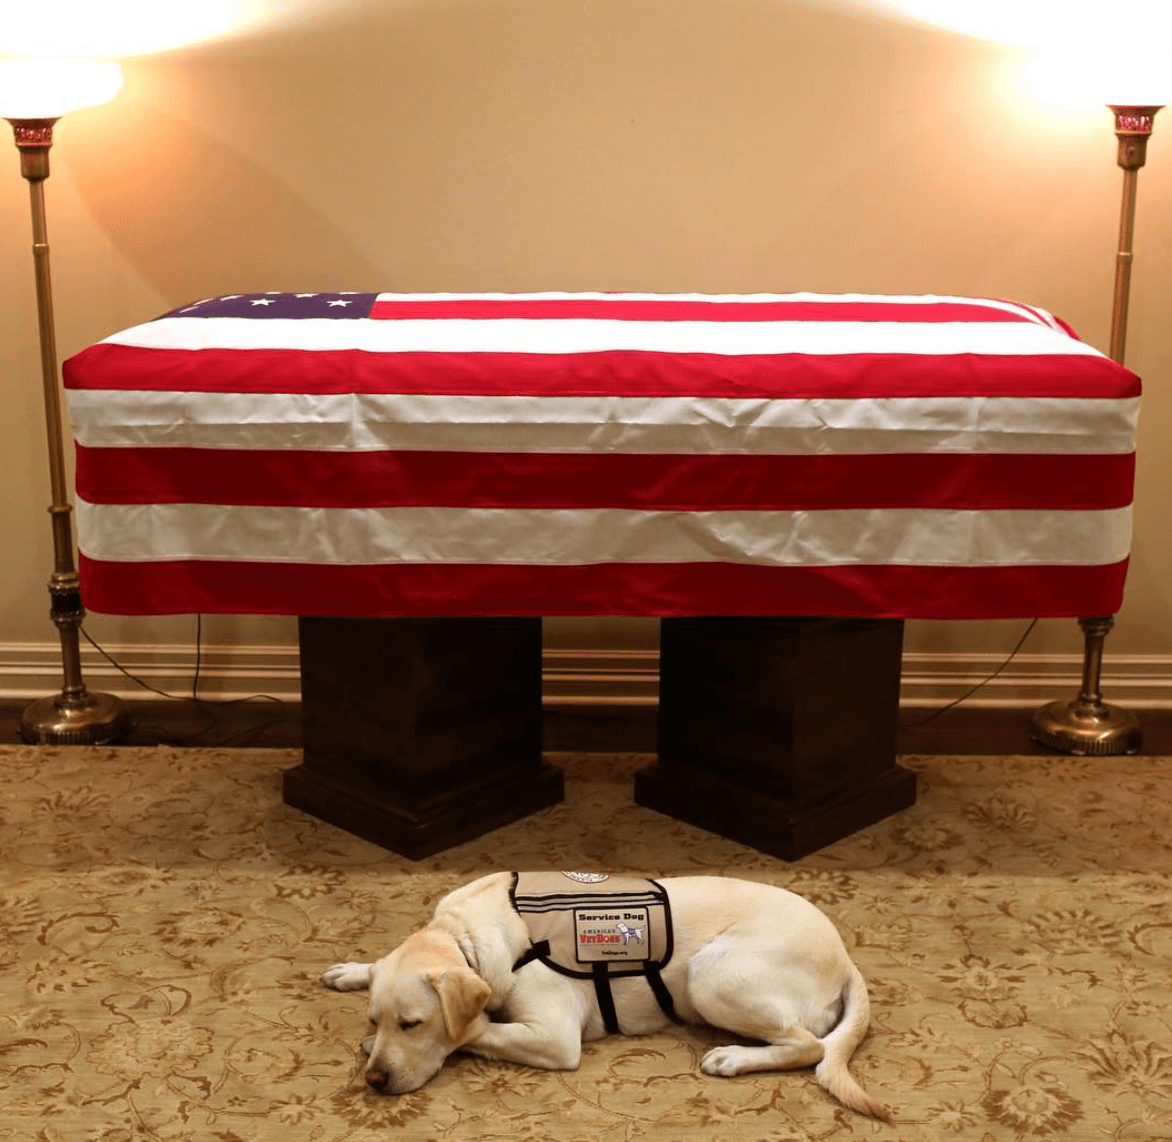 How Much Does It Cost To Train a Service Dog?